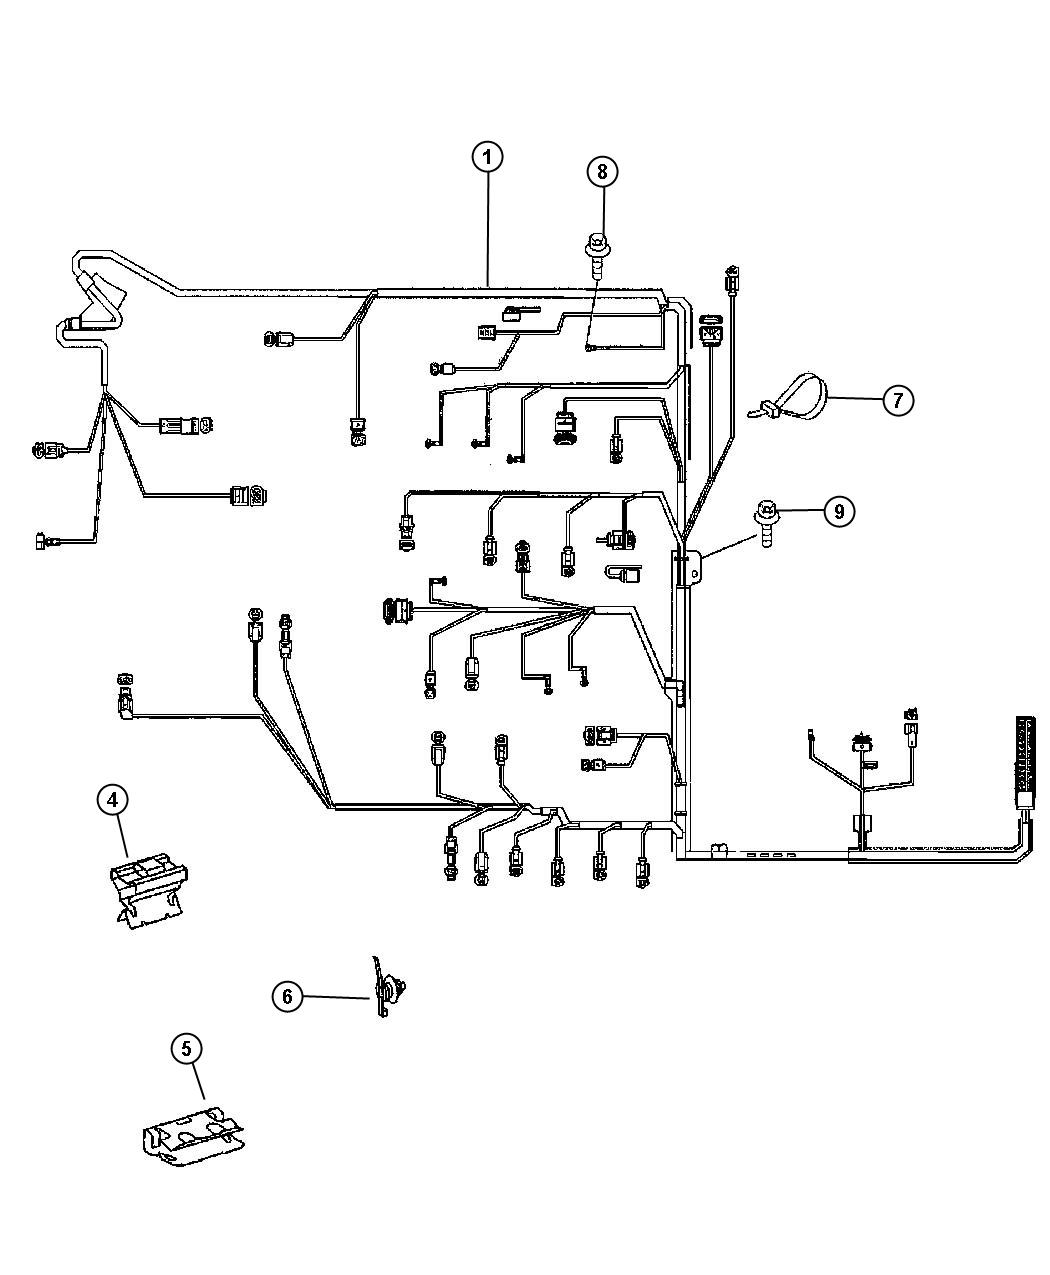 2010 sprinter engine intake diagram